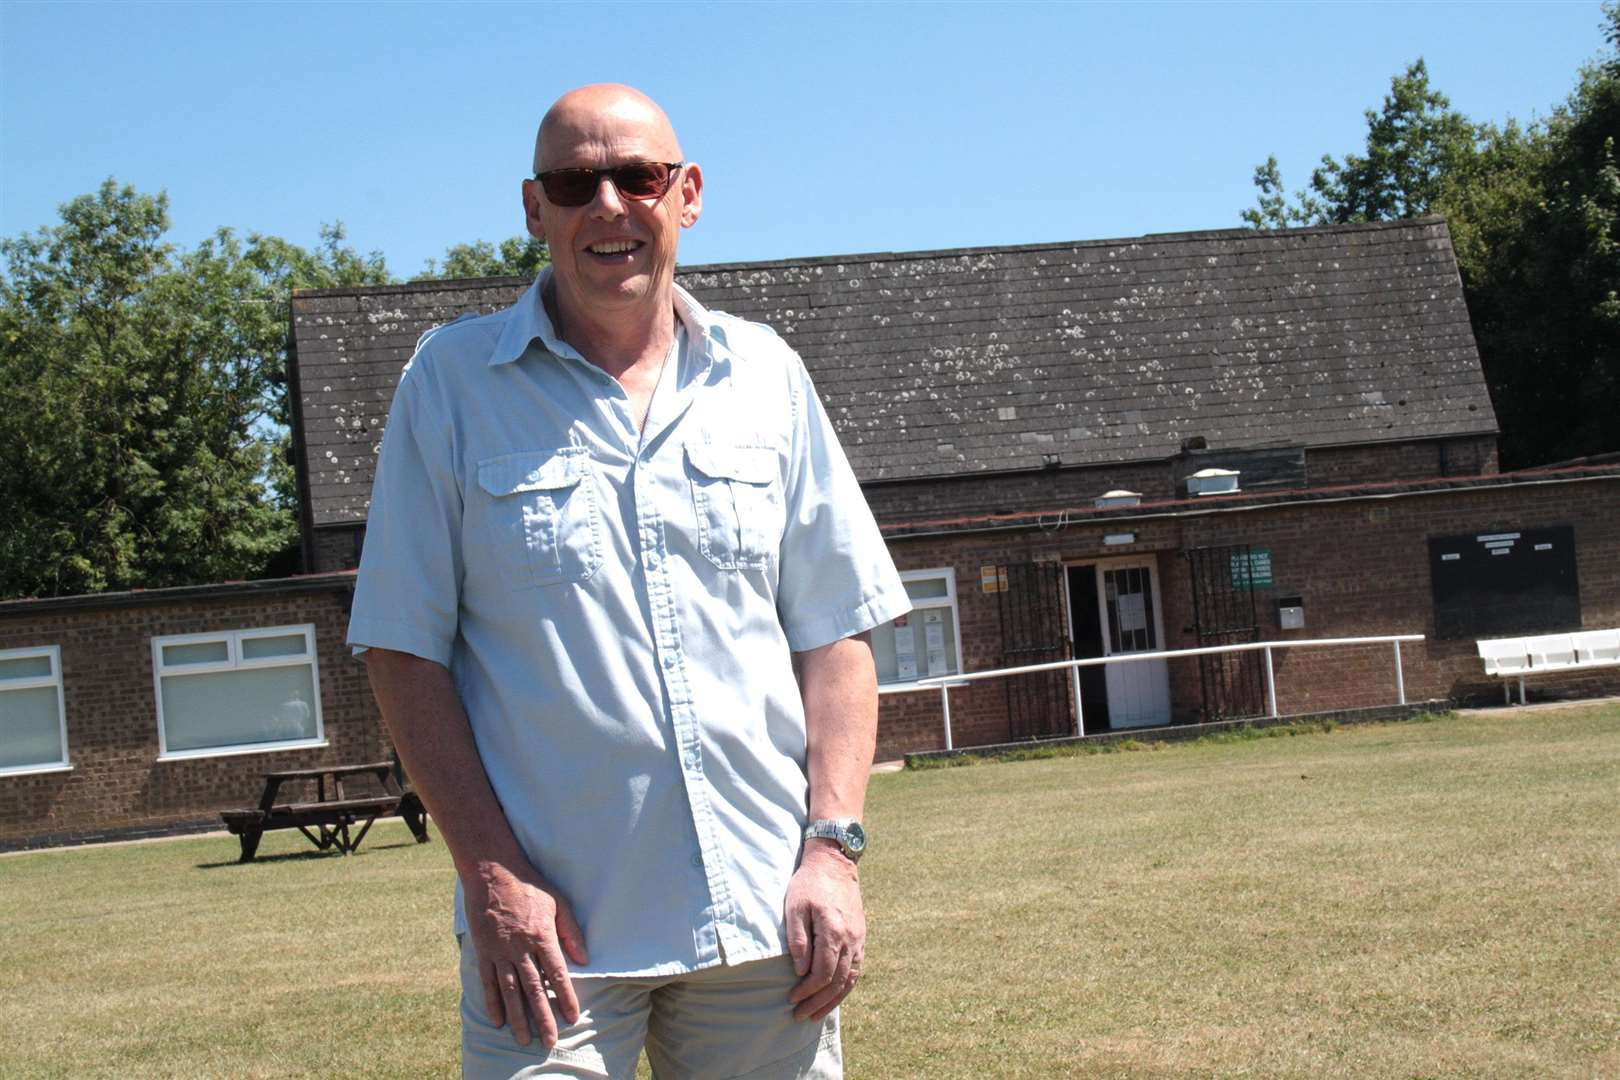 Colin Bullock is one of a team of volunteers keeping Greetham's thriving Community Centre running smoothly